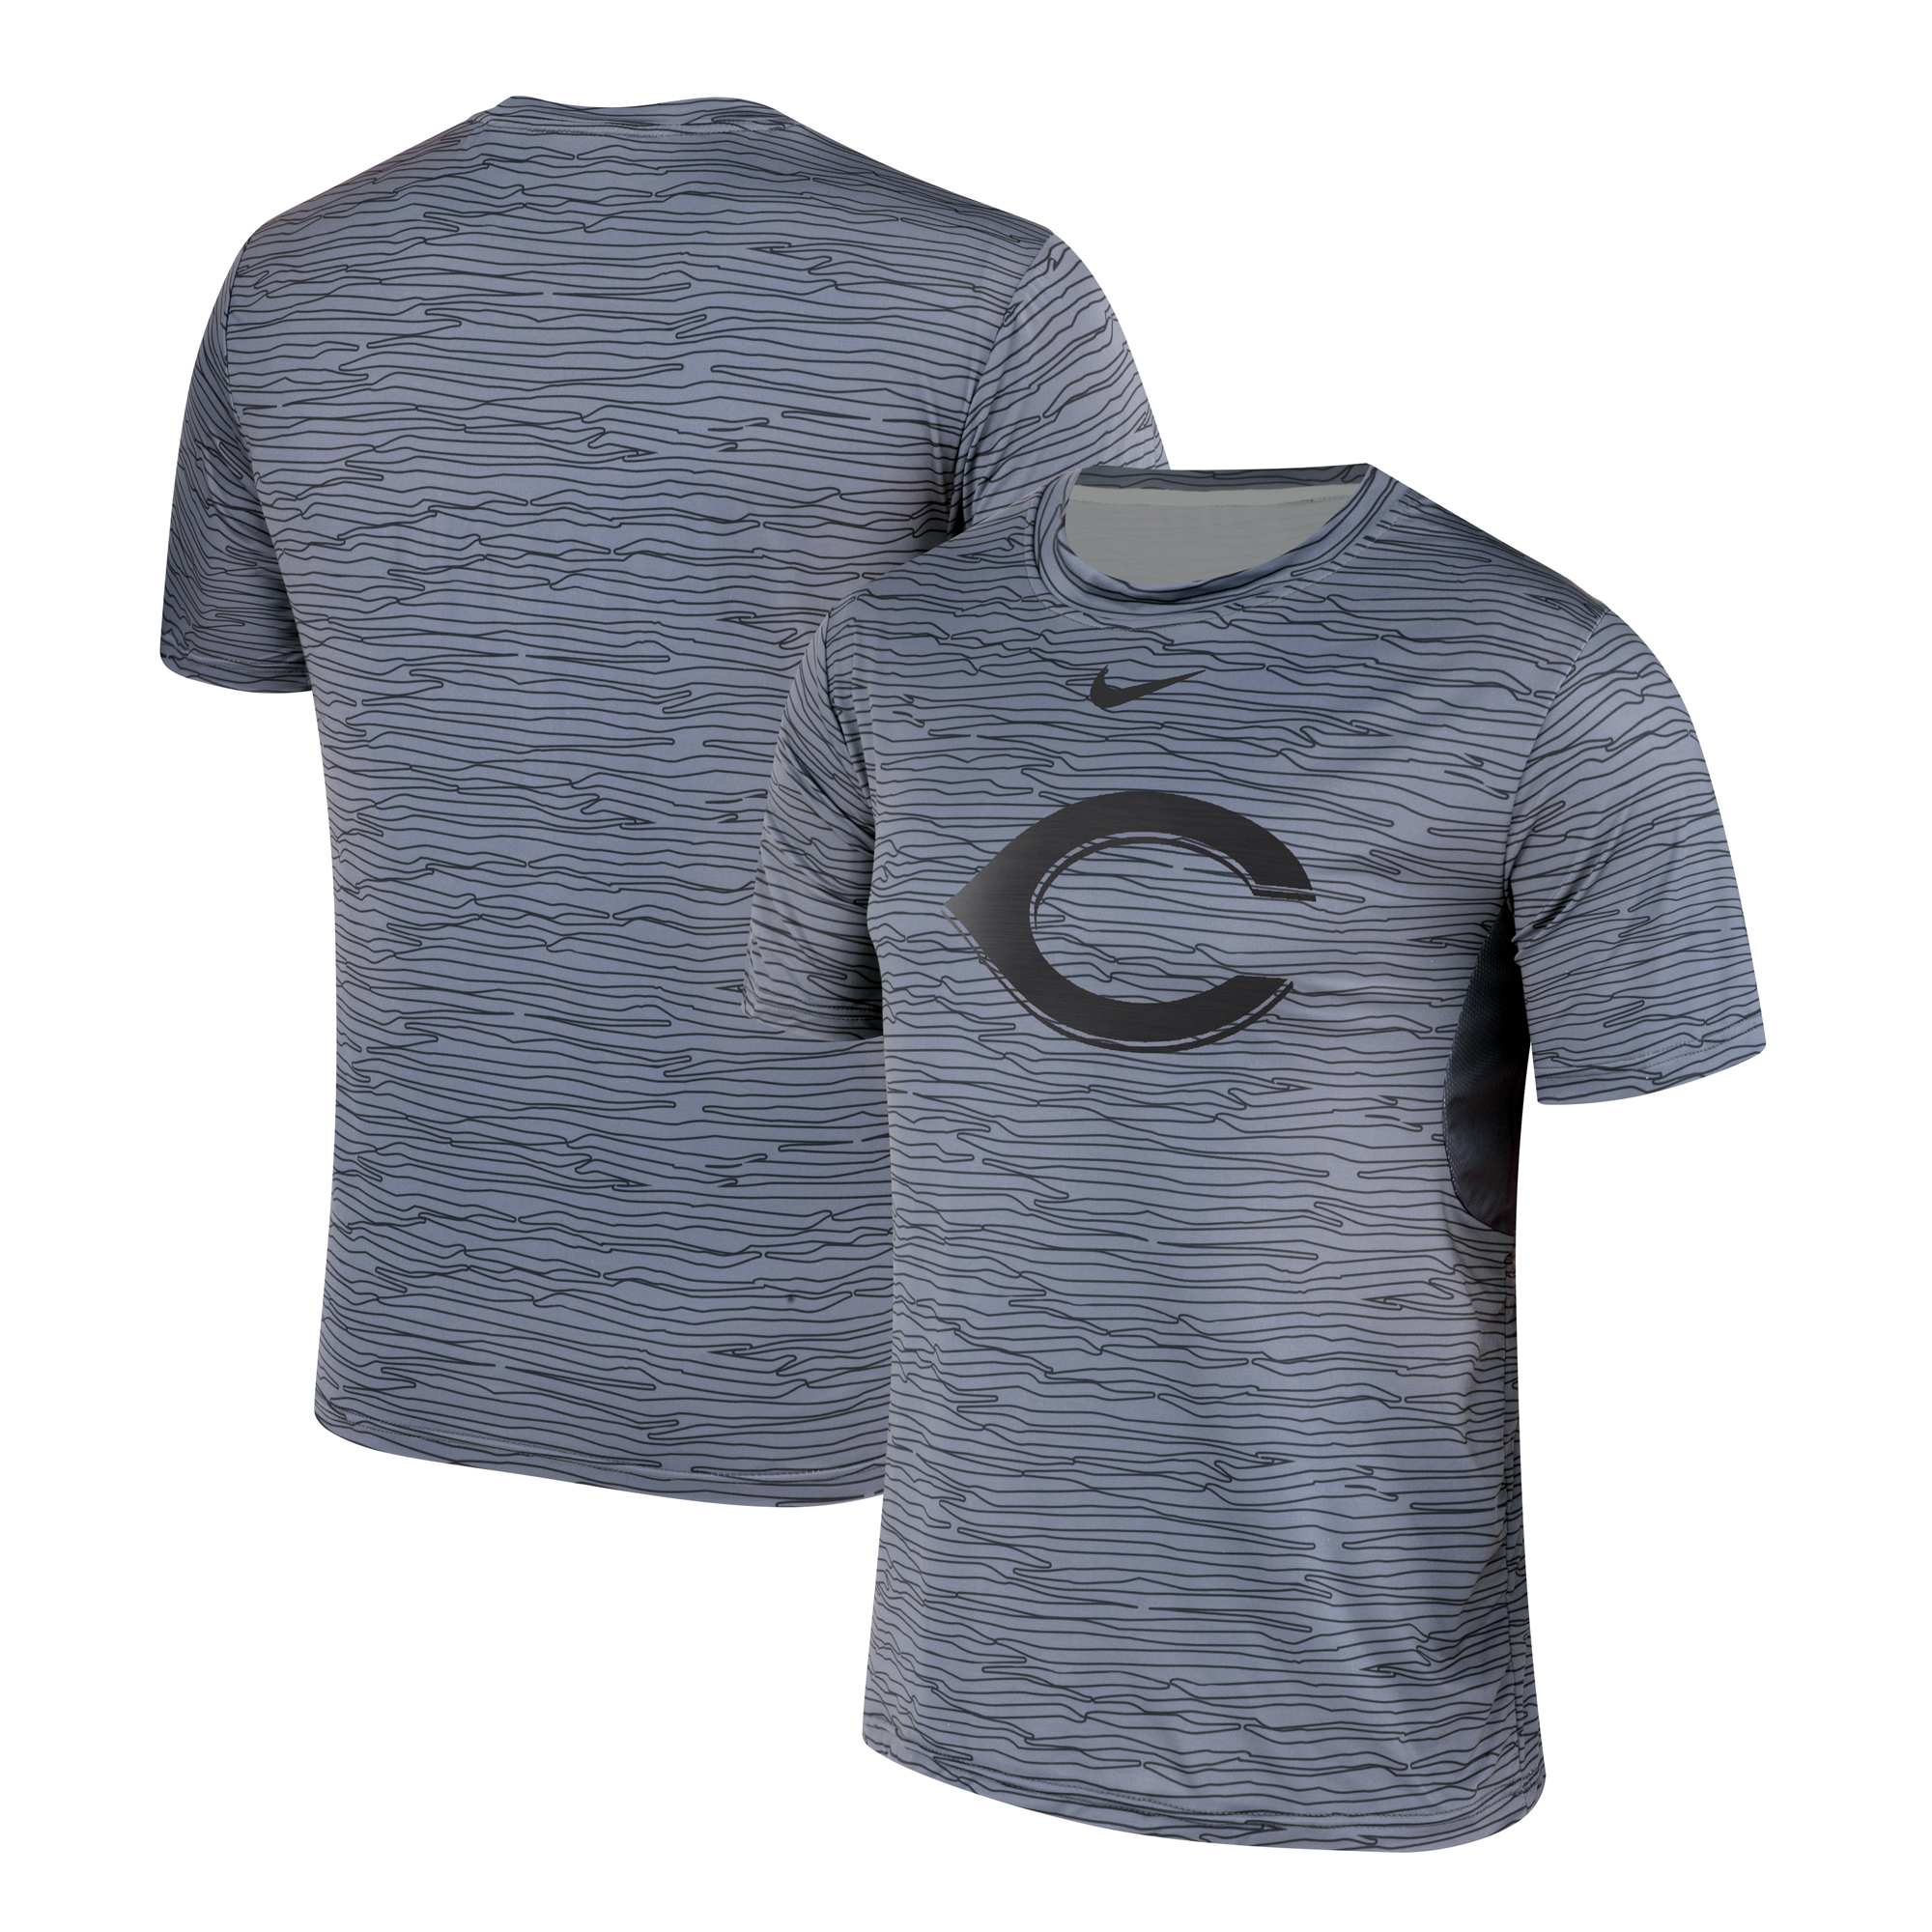 Nike Cincinnati Reds Gray Black Striped Logo Performance T-Shirt